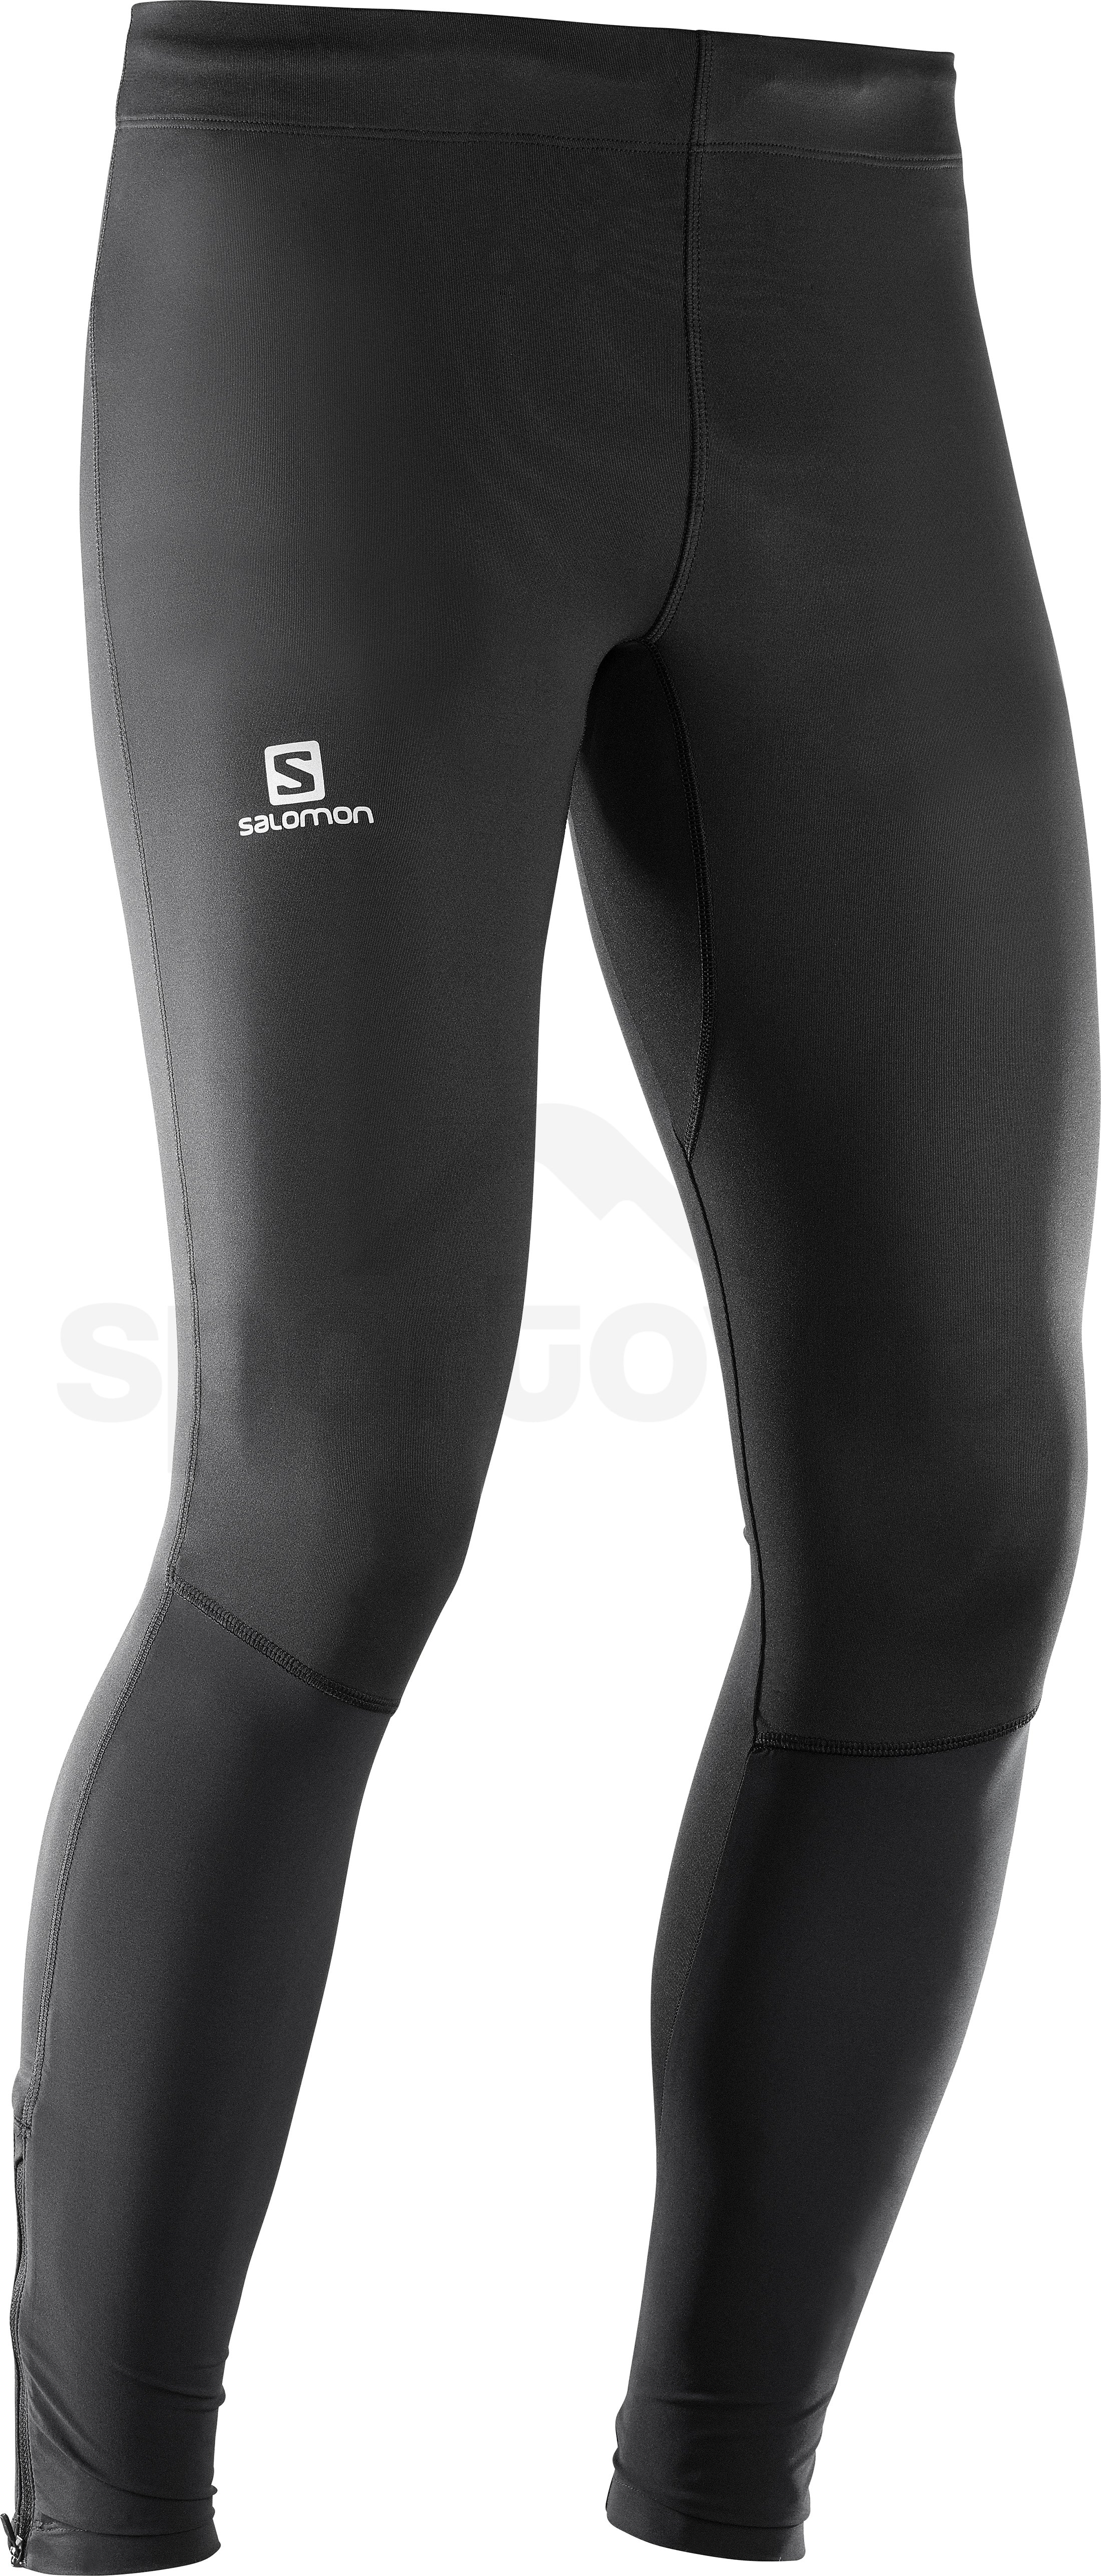 L40117400_2_m_agilelongtight_black_running.jpg.originalg